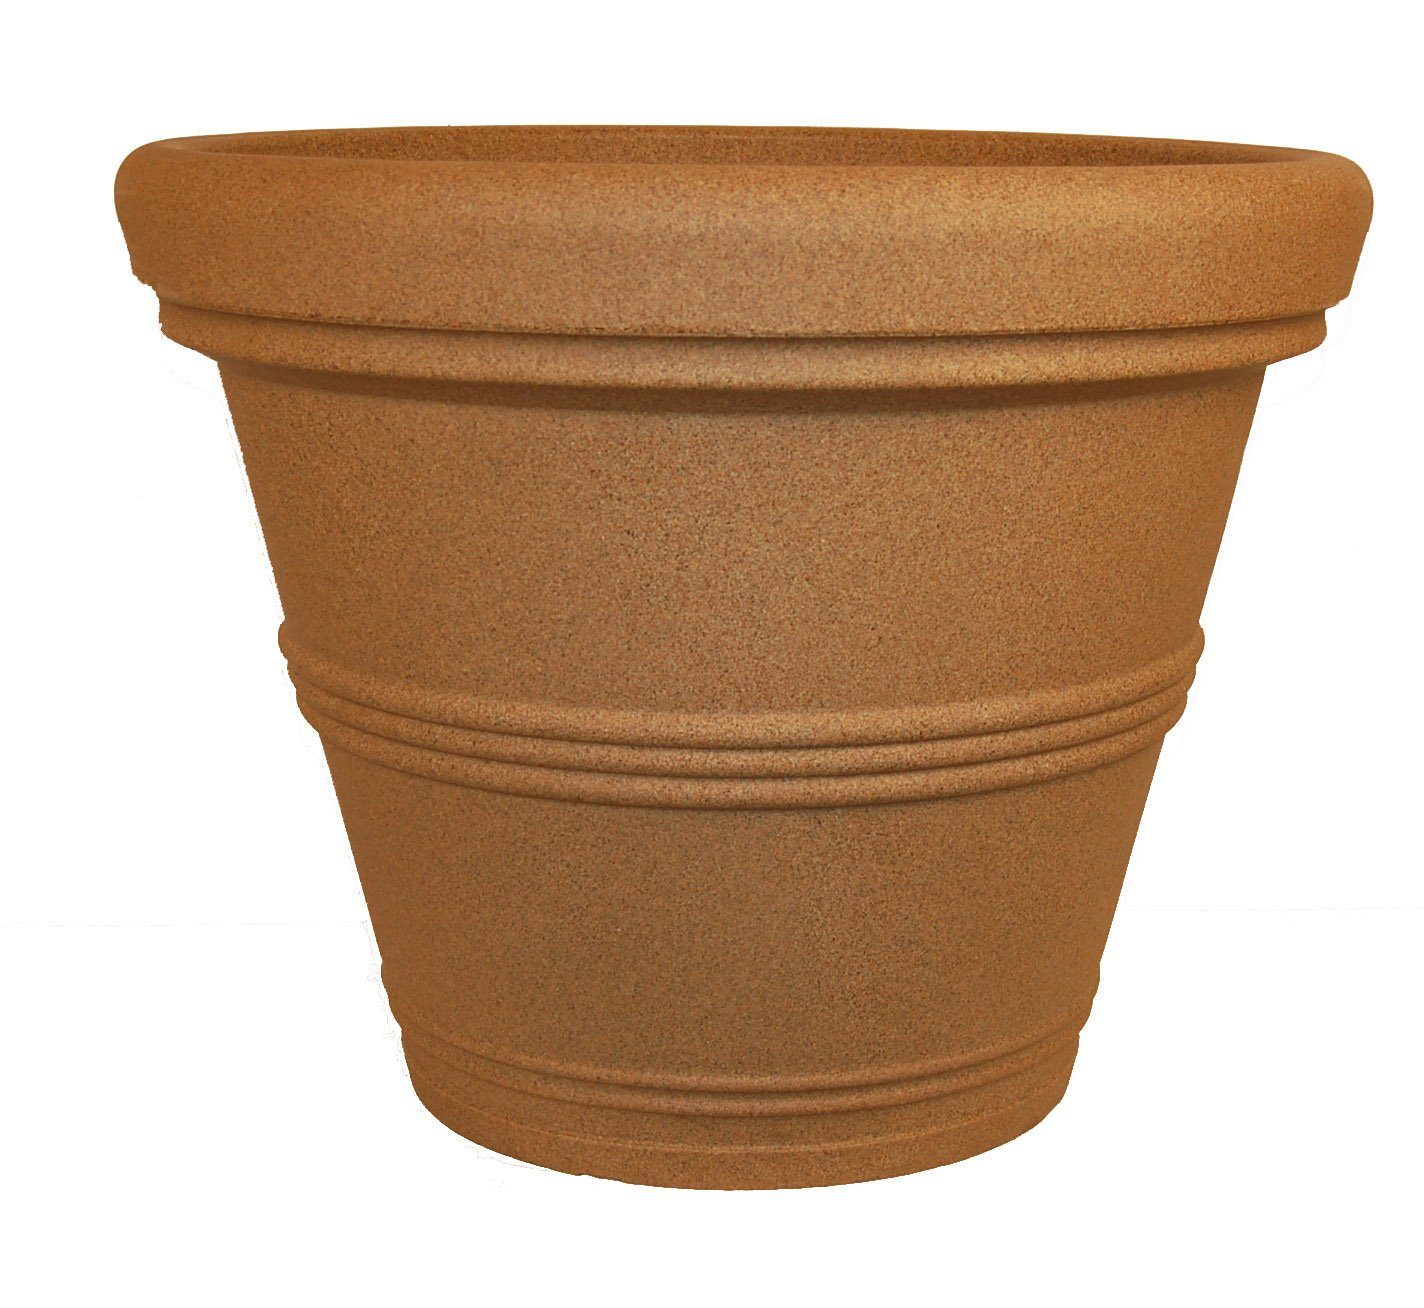 Tusco Products RR30SS Rolled Rim Garden Pot, 30-Inch, Sandstone by Tusco Products